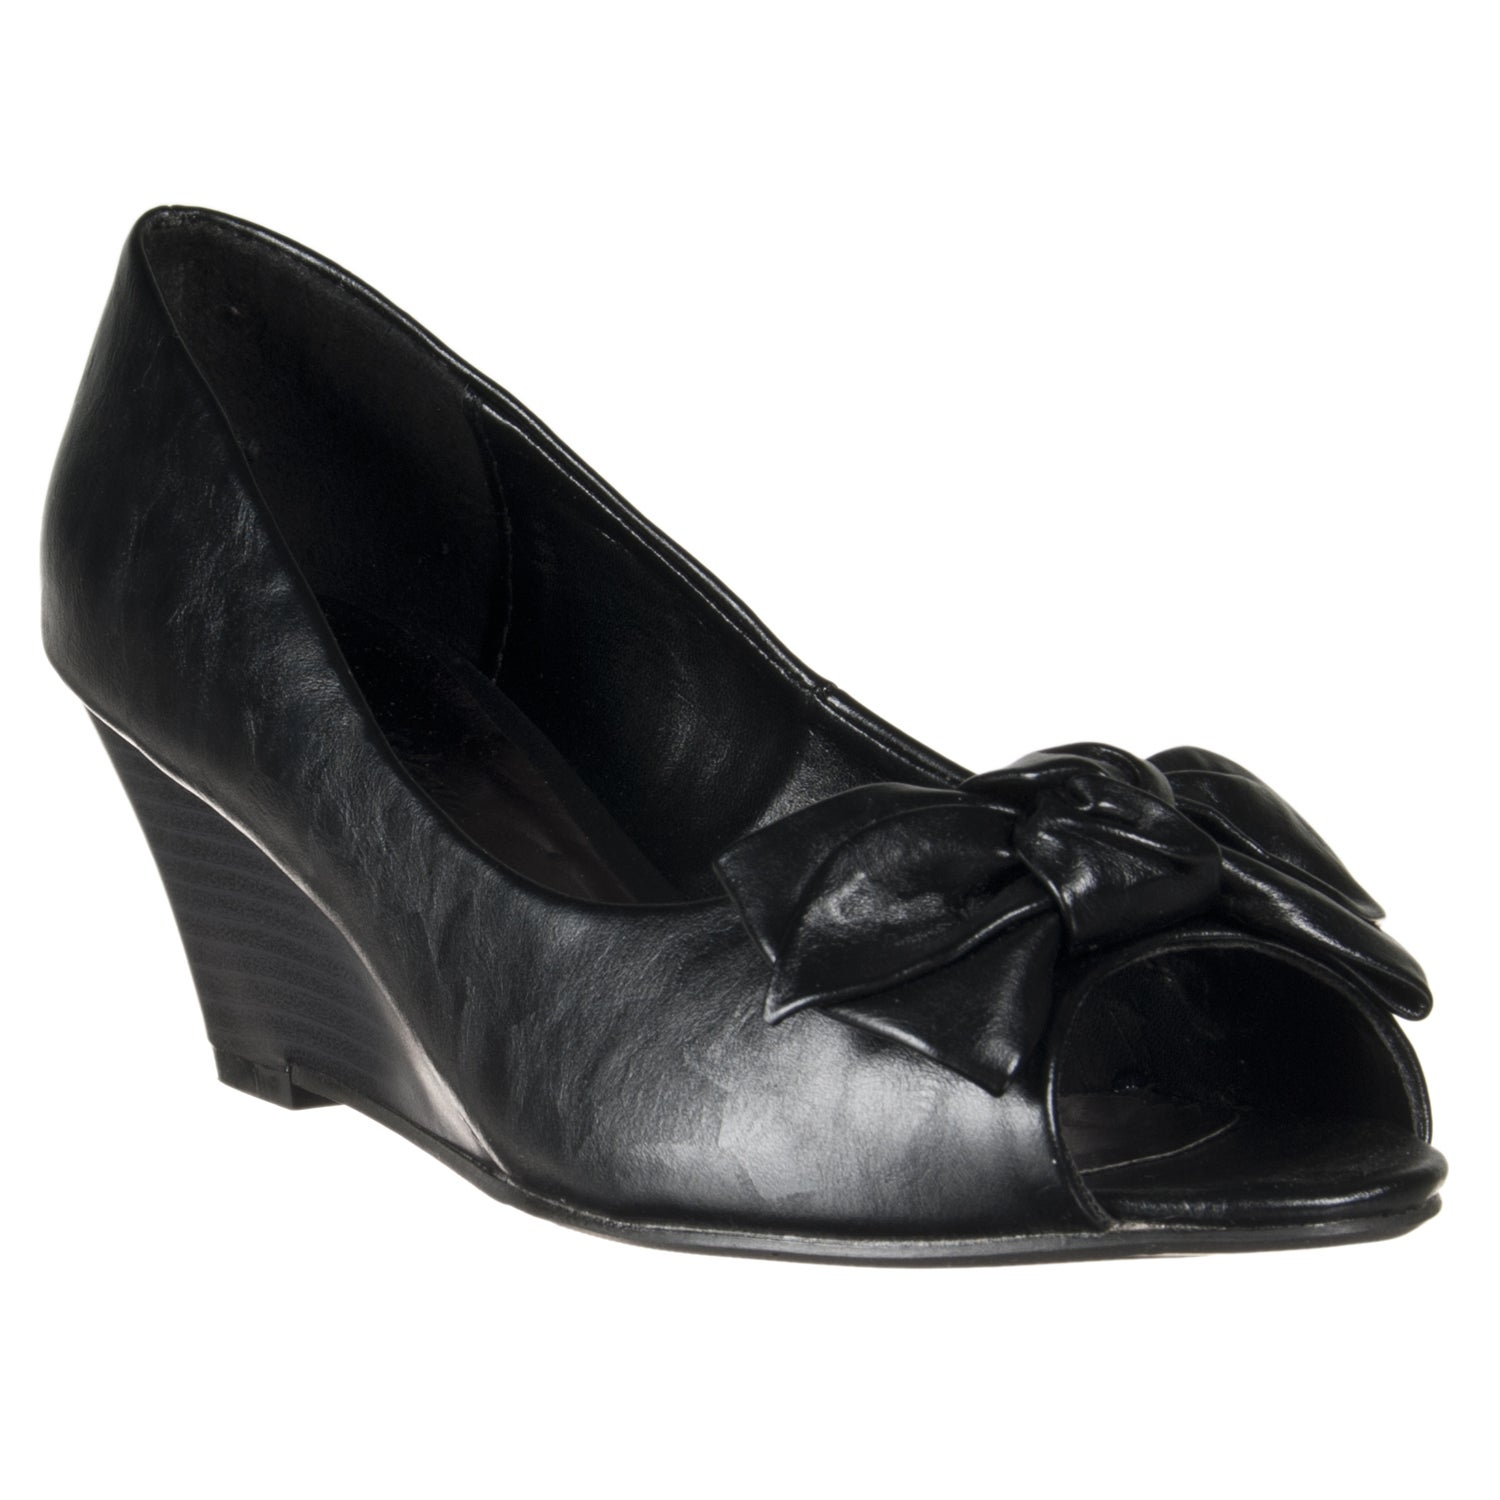 Riverberry Women's 'Network' Black Knot-bow Peep Toes